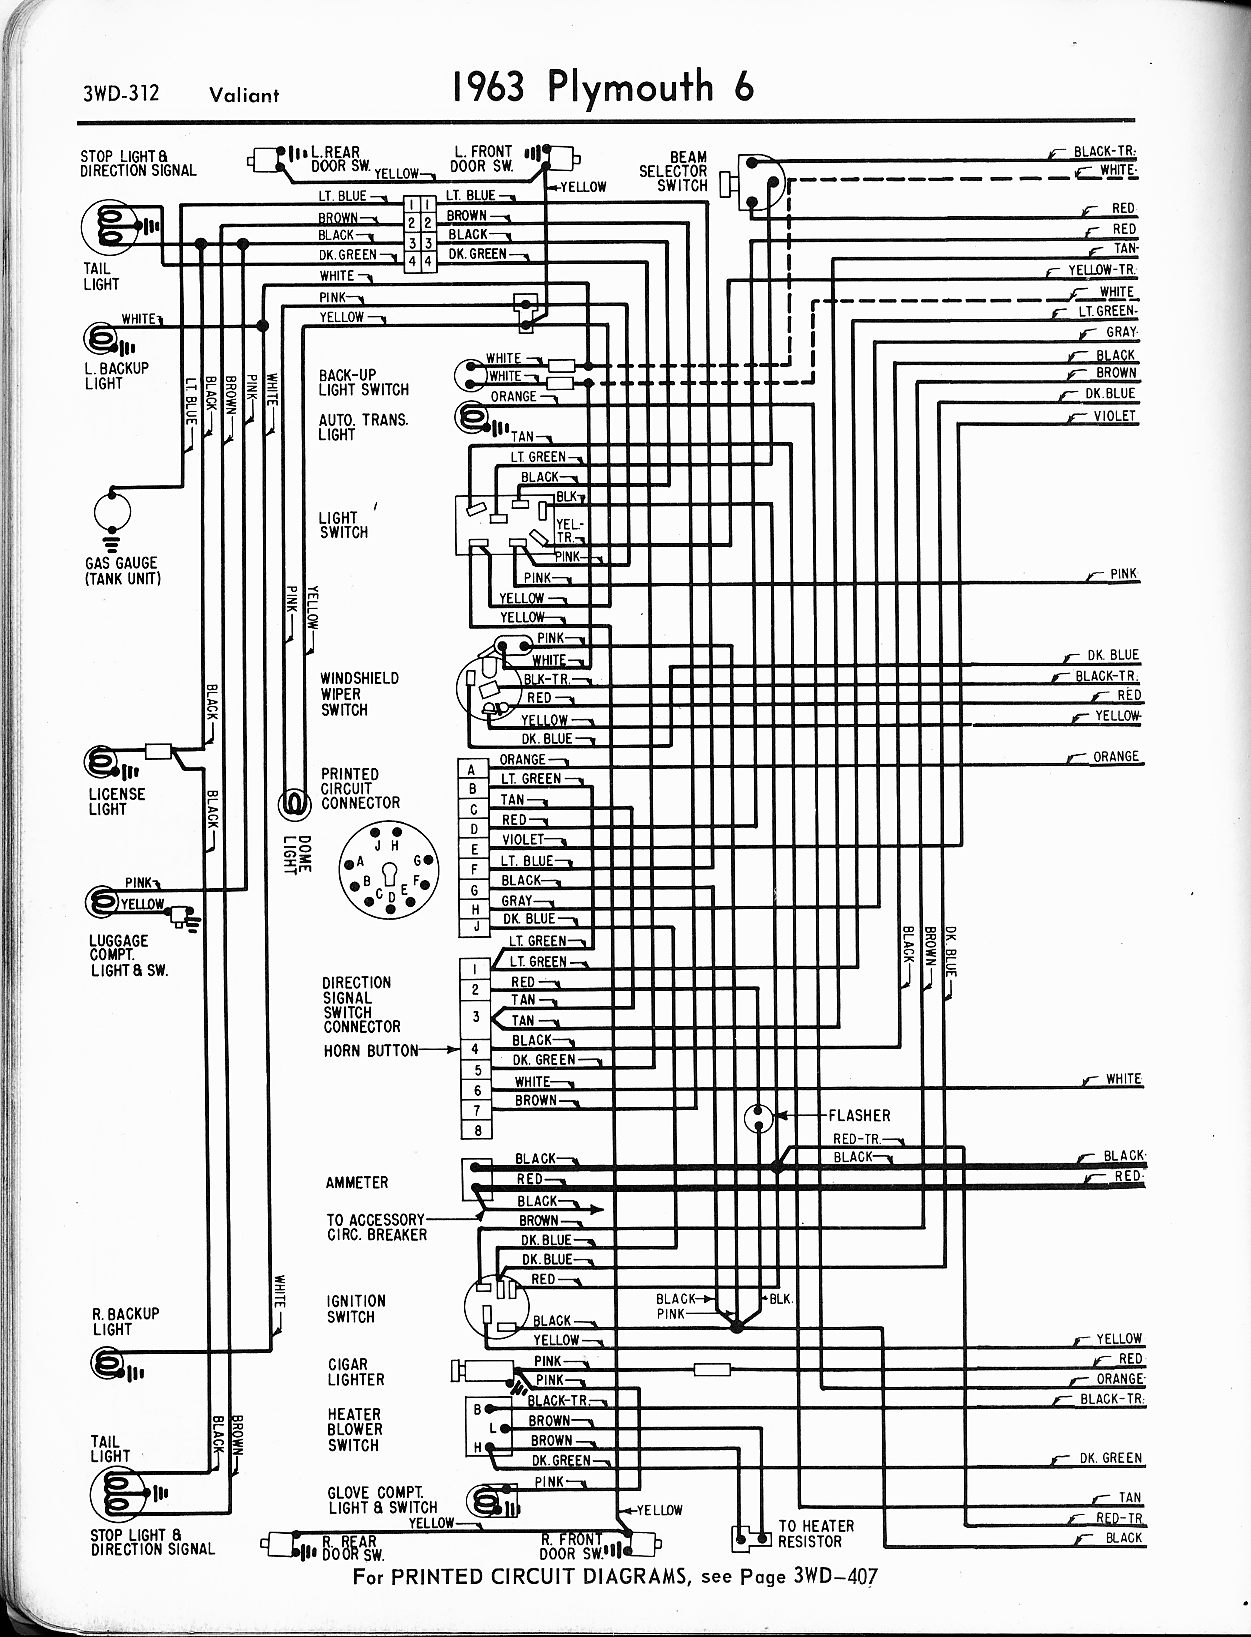 1975 plymouth valiant wiring diagram free download enthusiast rh rasalibre co 1972 Plymouth Valiant 1976 Plymouth Valiant